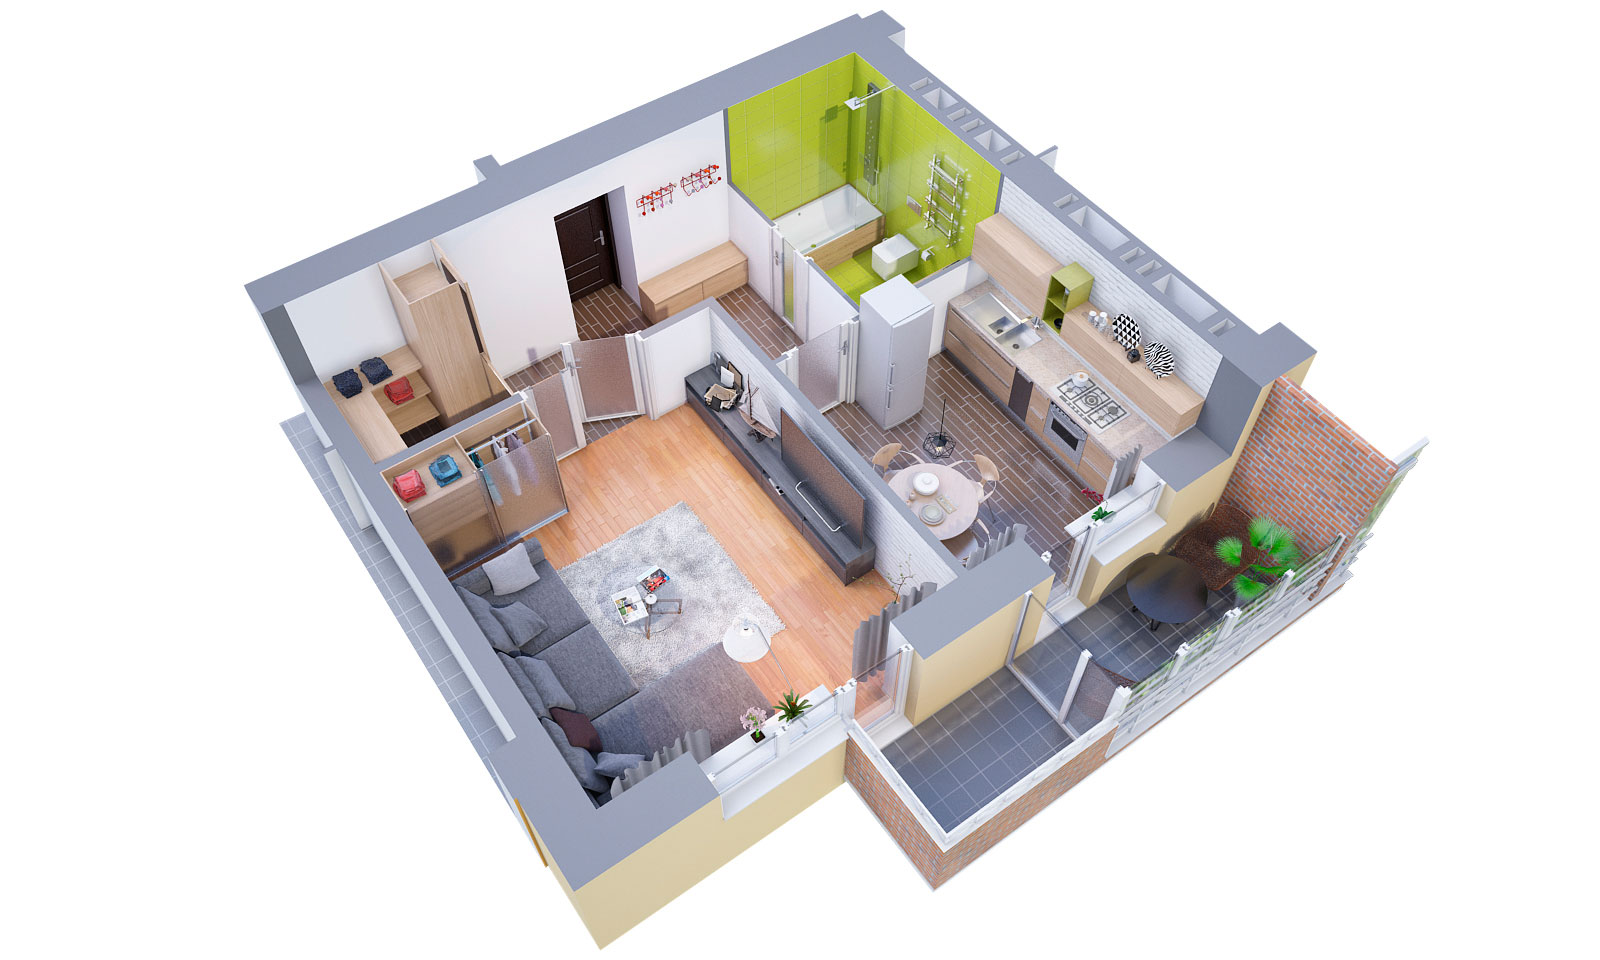 3D Floor Plans / 3d Modeling And Visualization